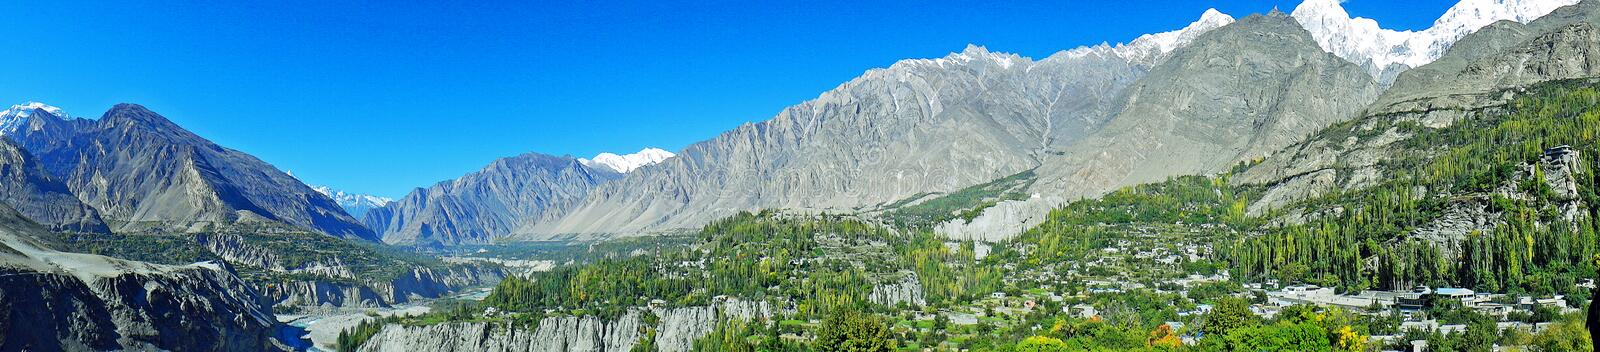 Panorama van Hunza-Vallei in Pakistan stock fotografie